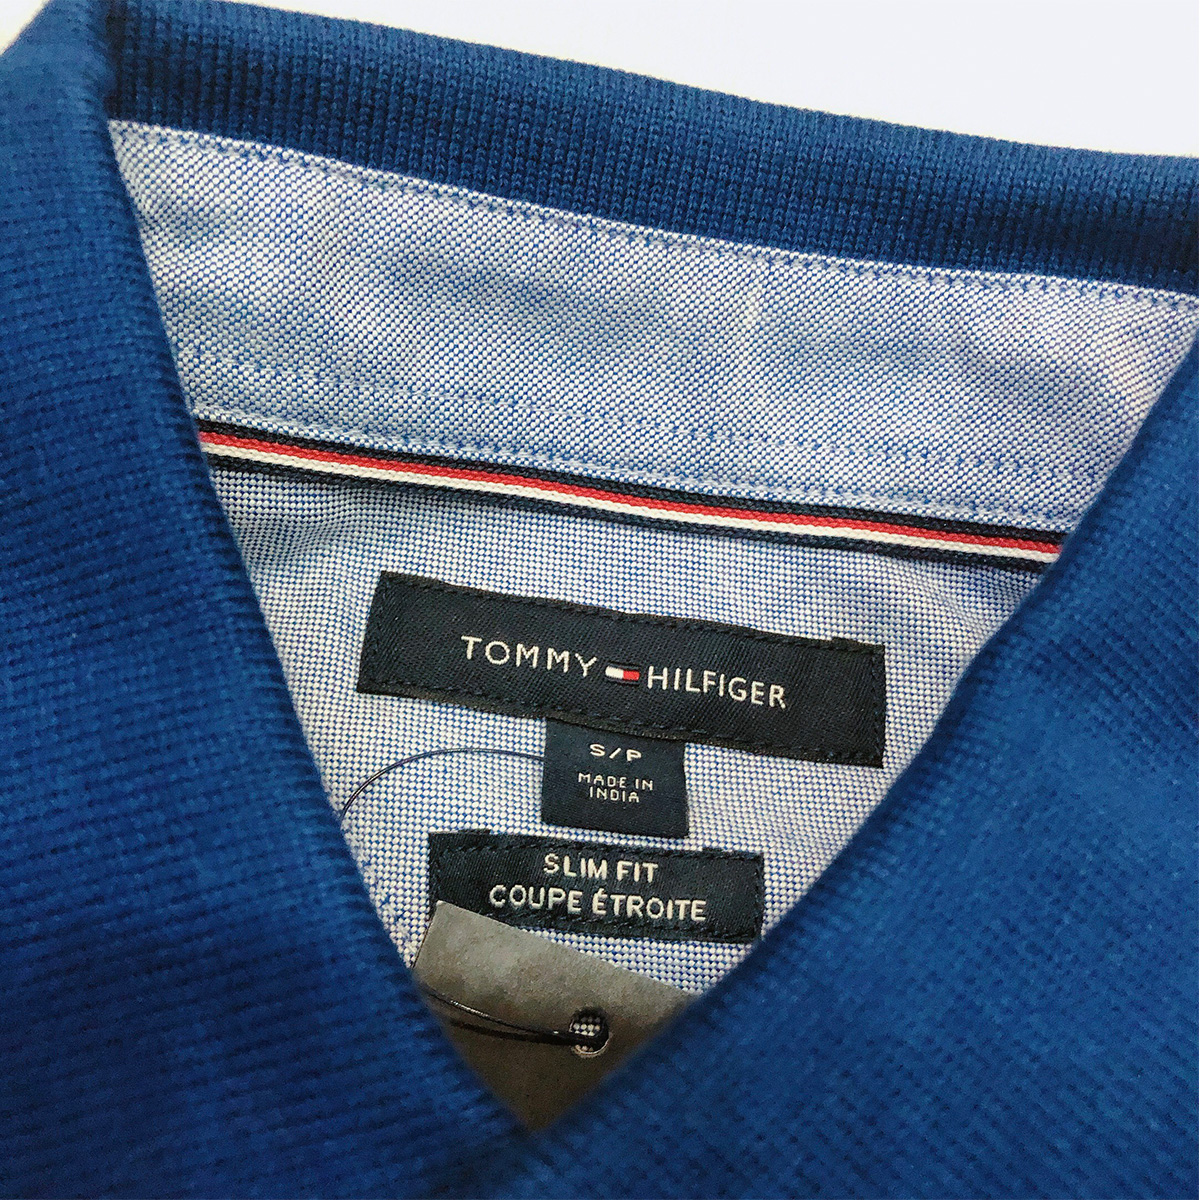 ao-polo-tommy-hilfiger-slim-fit-39